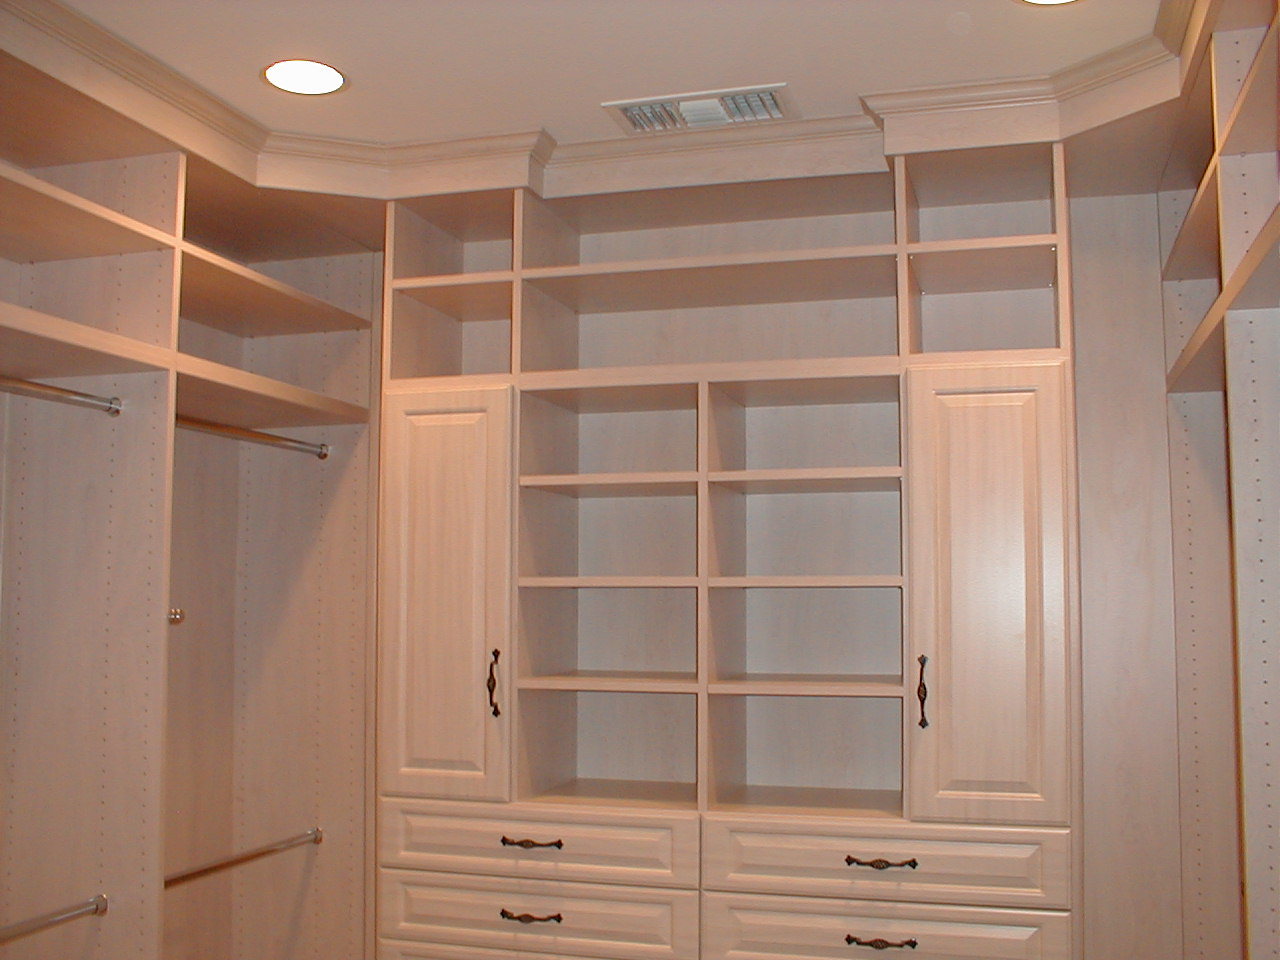 California Closet Systems | Closet Planner | California Closets Images